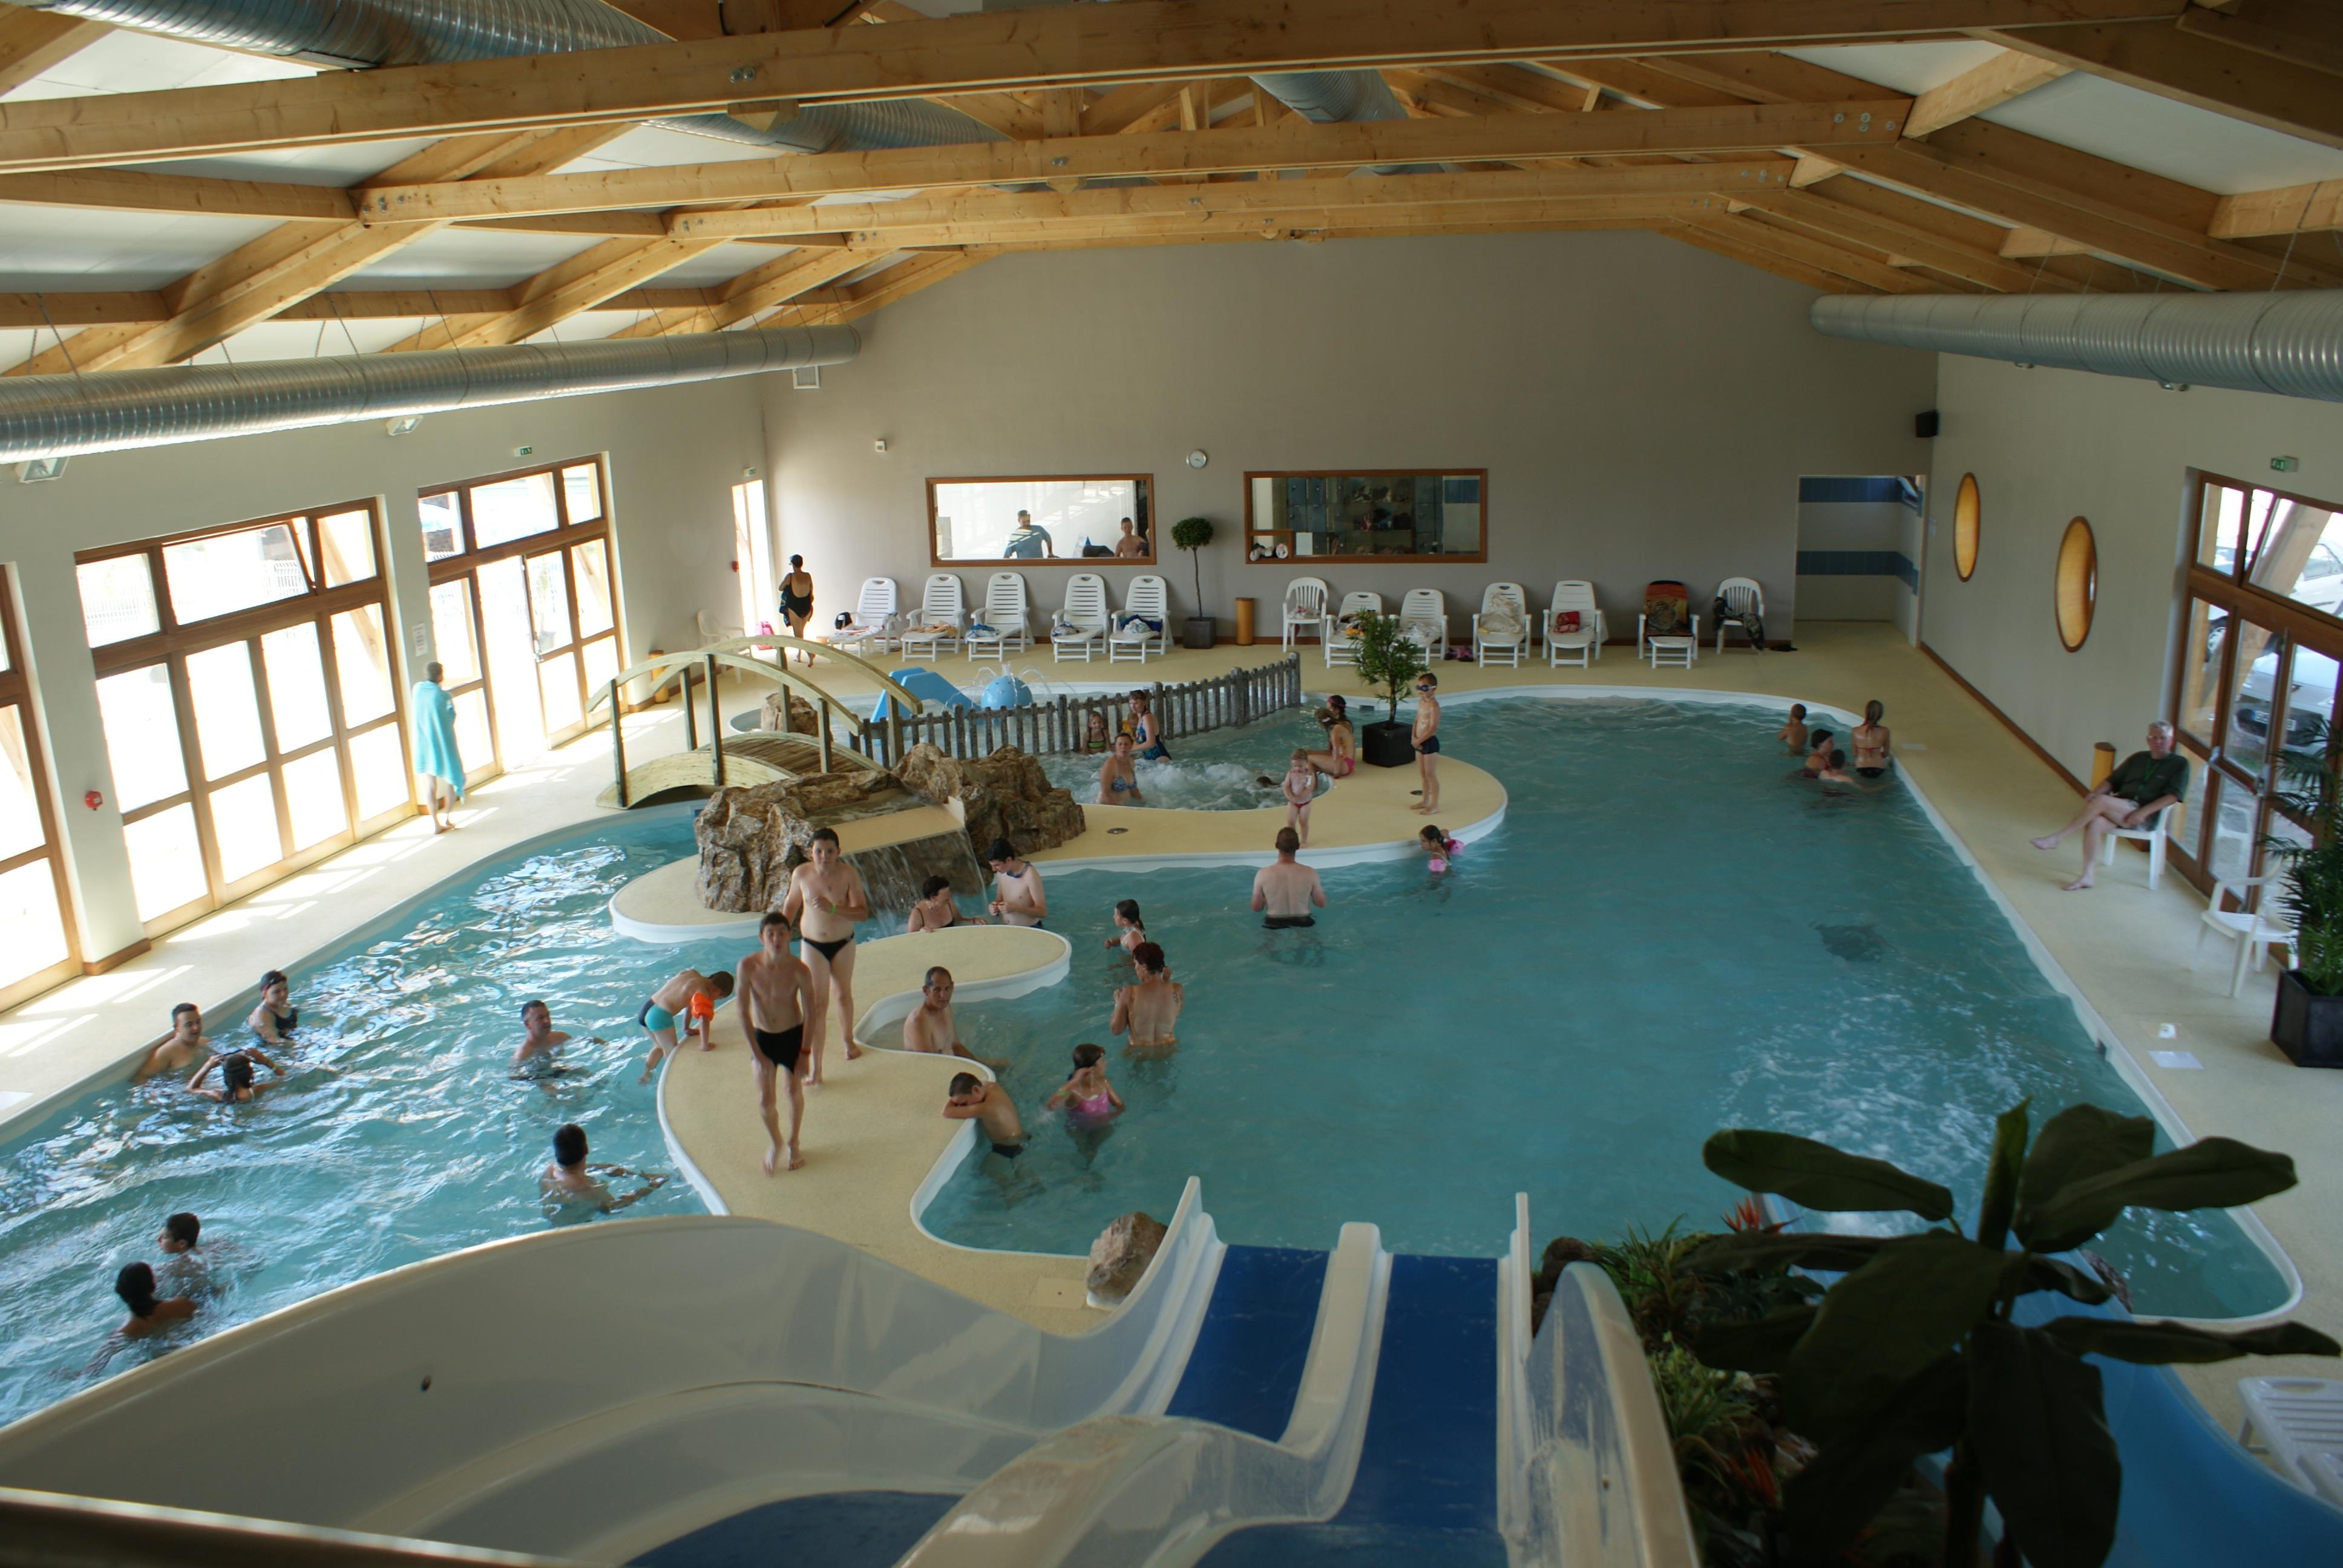 Establishment Camping Le Champ Neuf - Saint Quentin En Tourmont